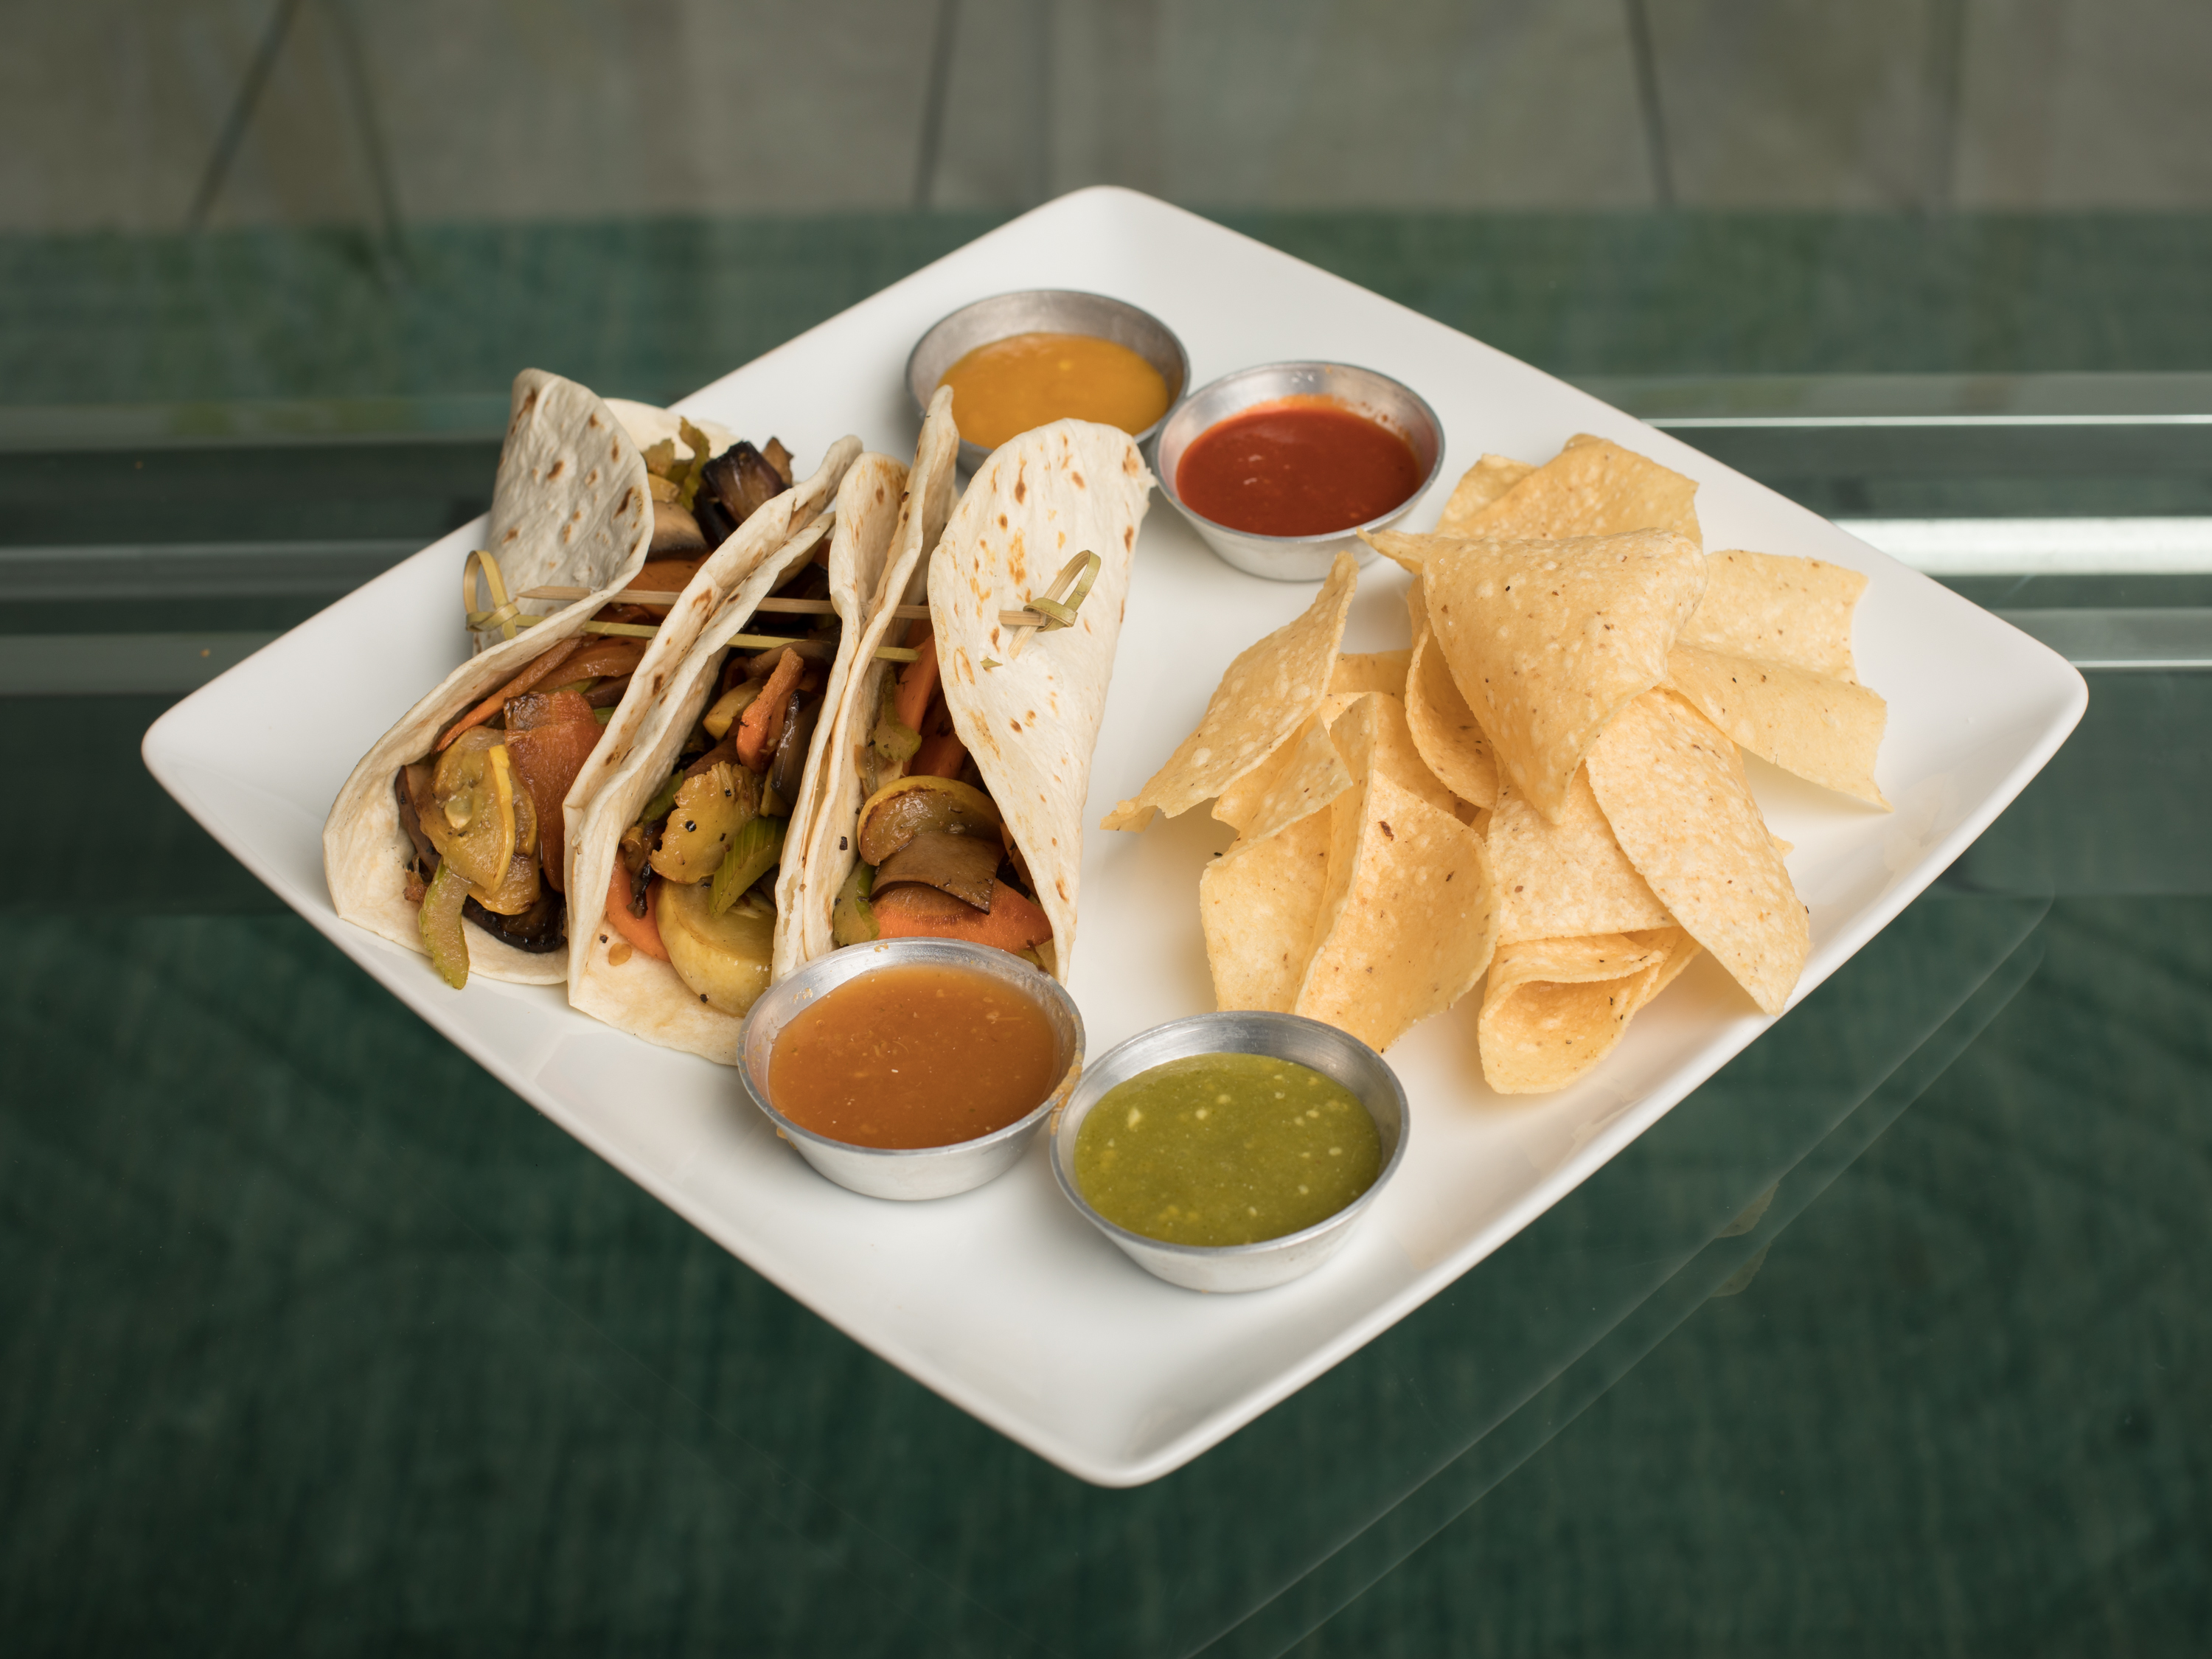 Dallas Food Trends for Catering and Dining Out